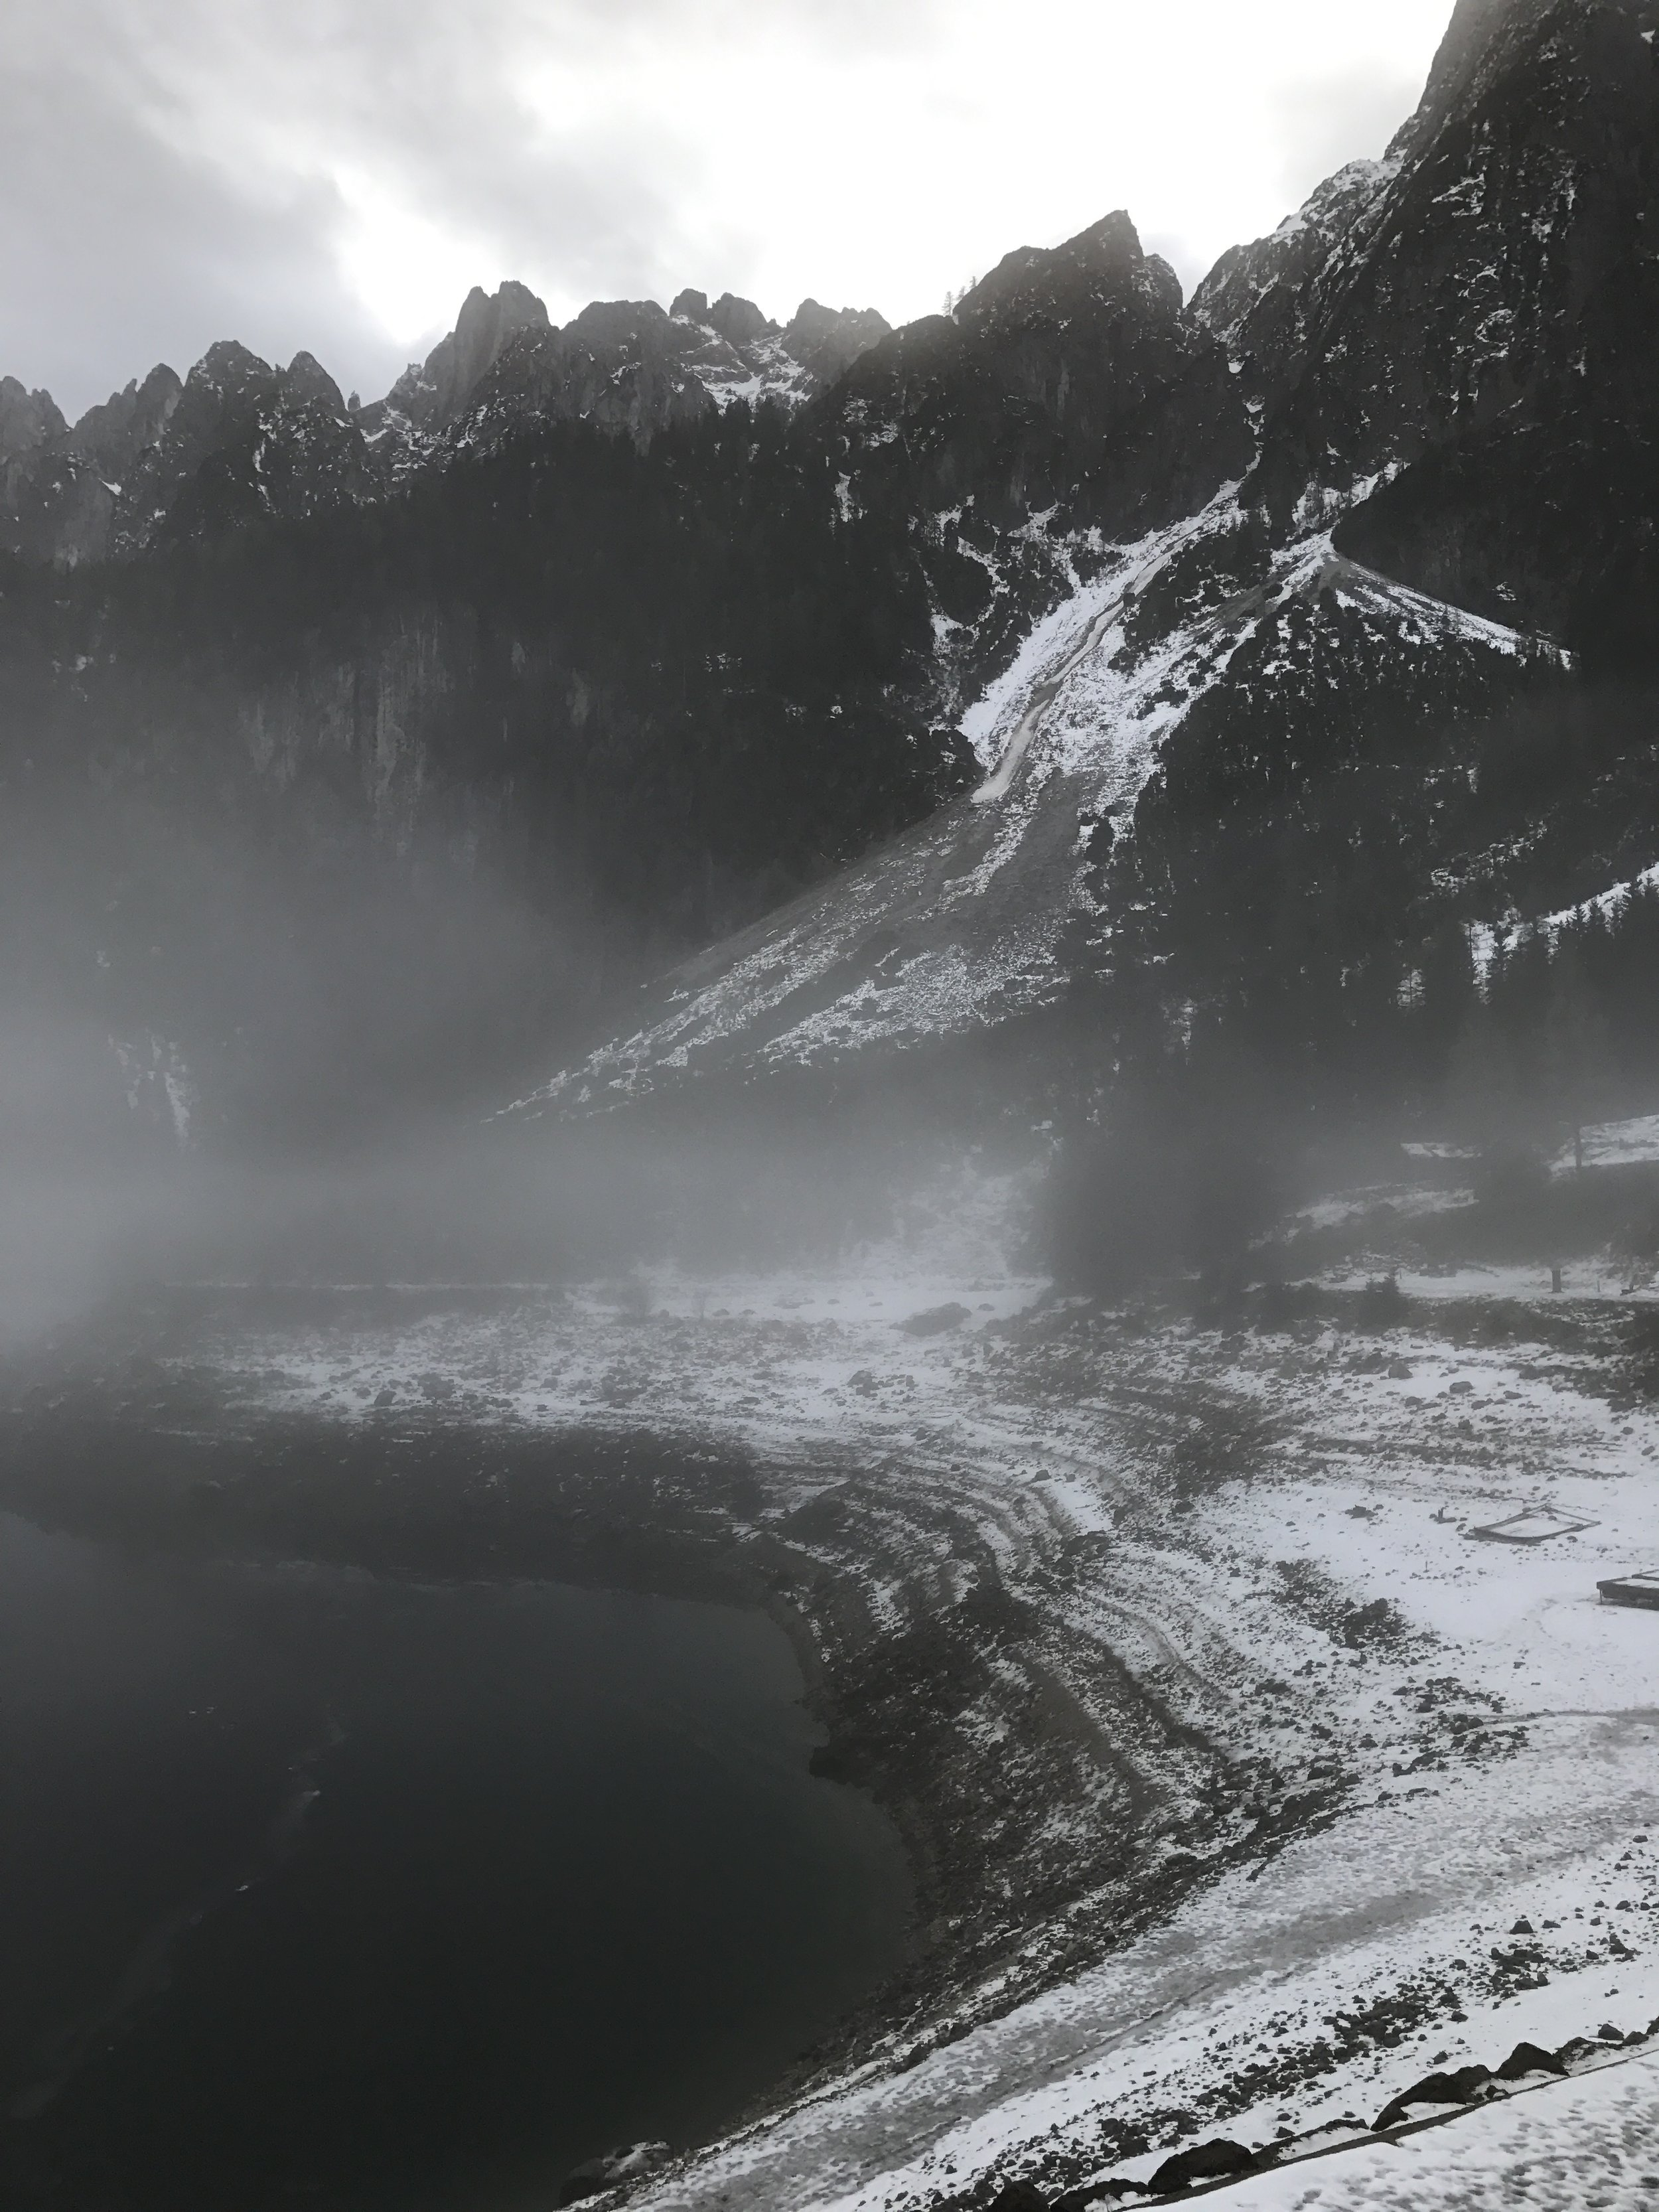 After our visit to Hallstatt we drove off to see some glaciers from this area near the alps. Pretty stunning area even though we ended up not seeing glaciers bc of low visibility.